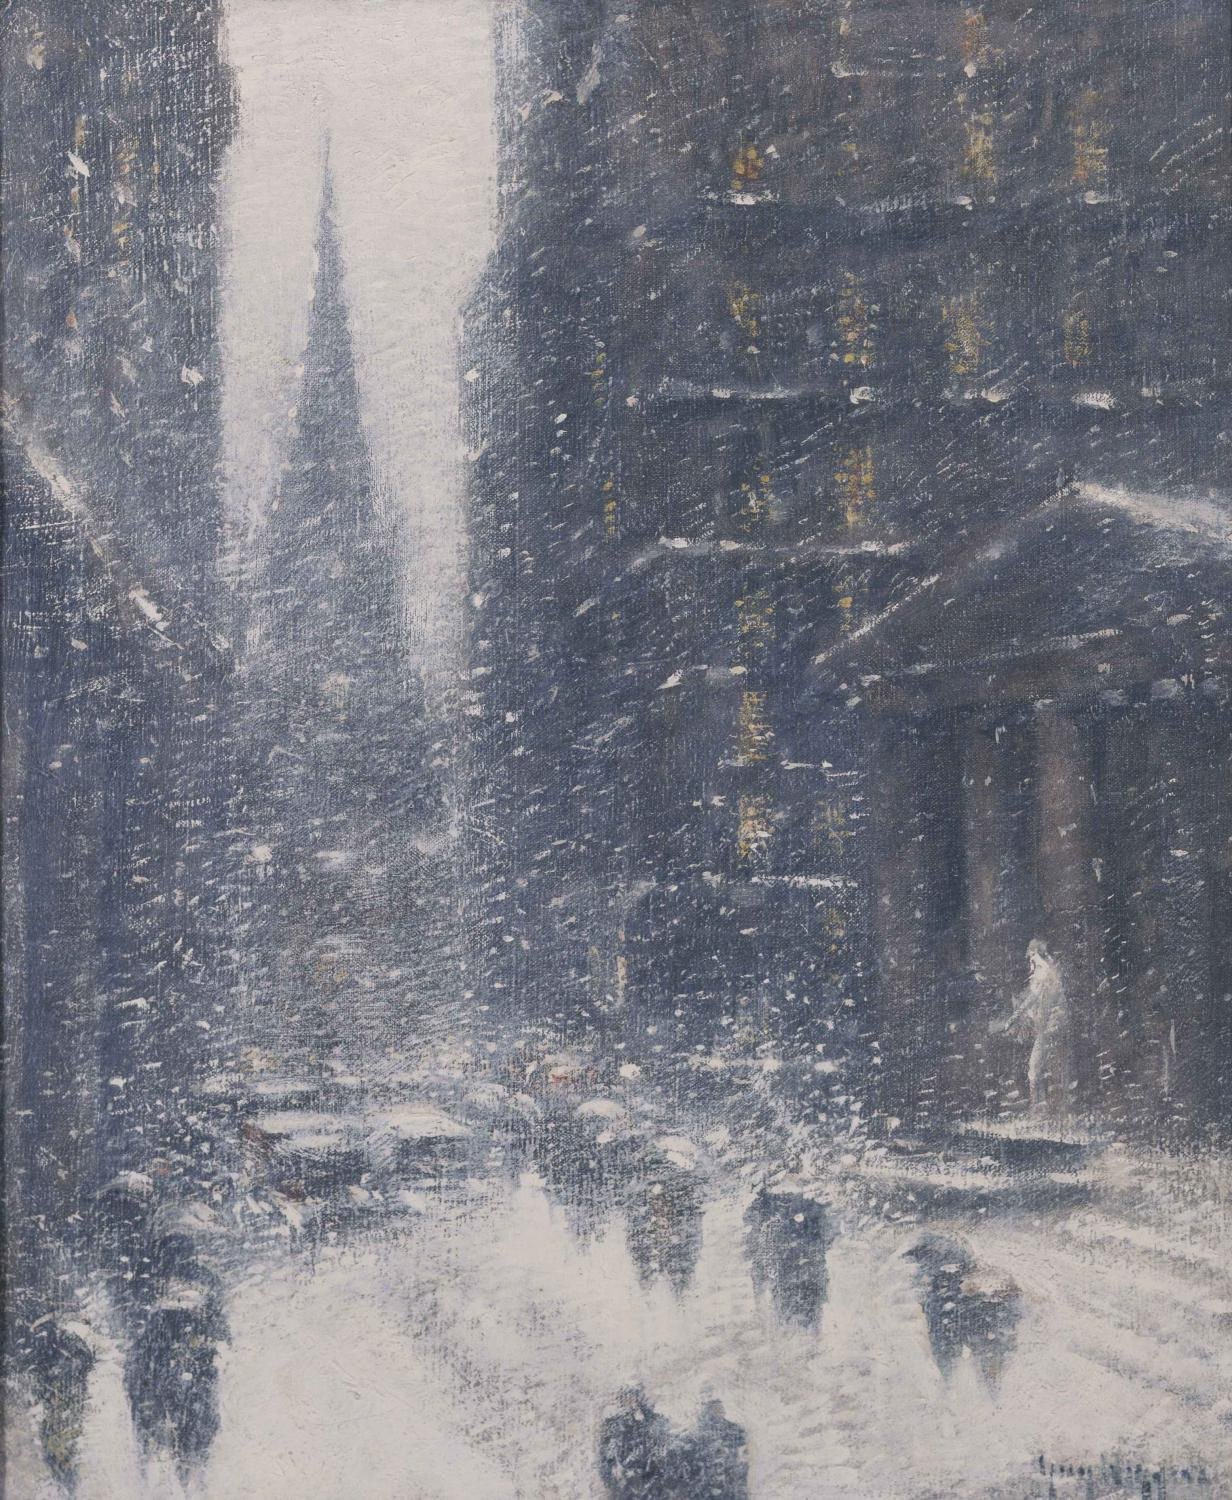 New York Wall Street with heavy snow. Pedestrians silhouettes walking between the buildings, with dime lights shining through the windows.